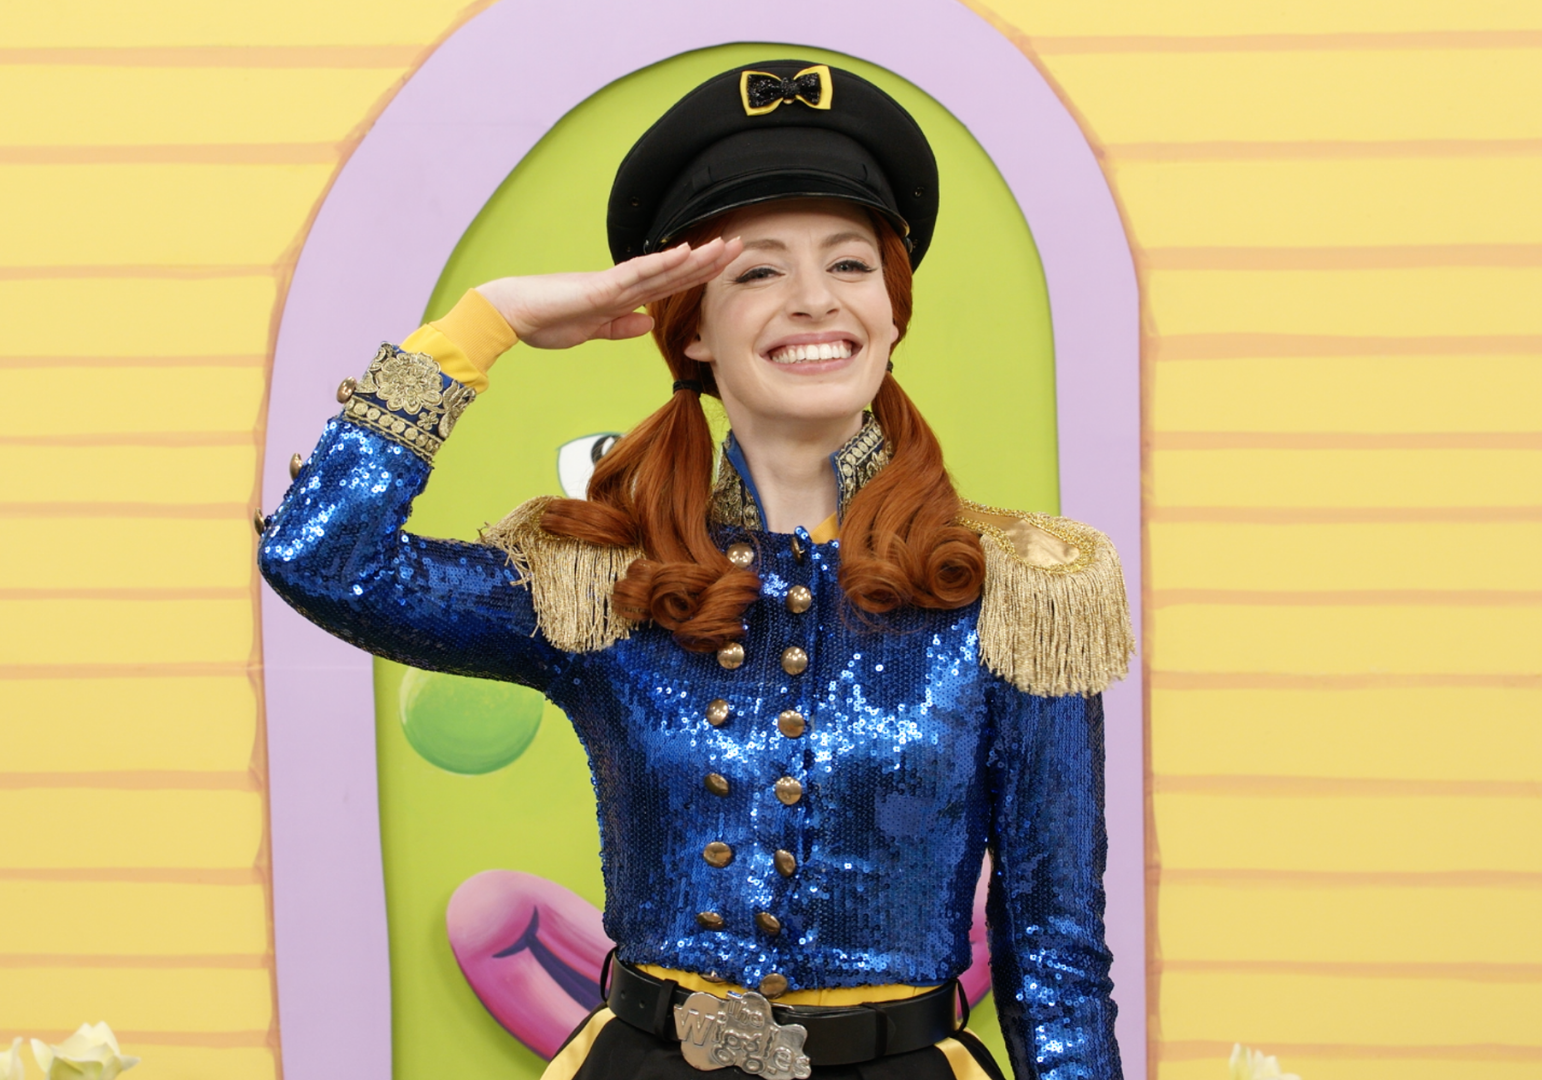 Be A Pilot with Emma! by The Wiggles